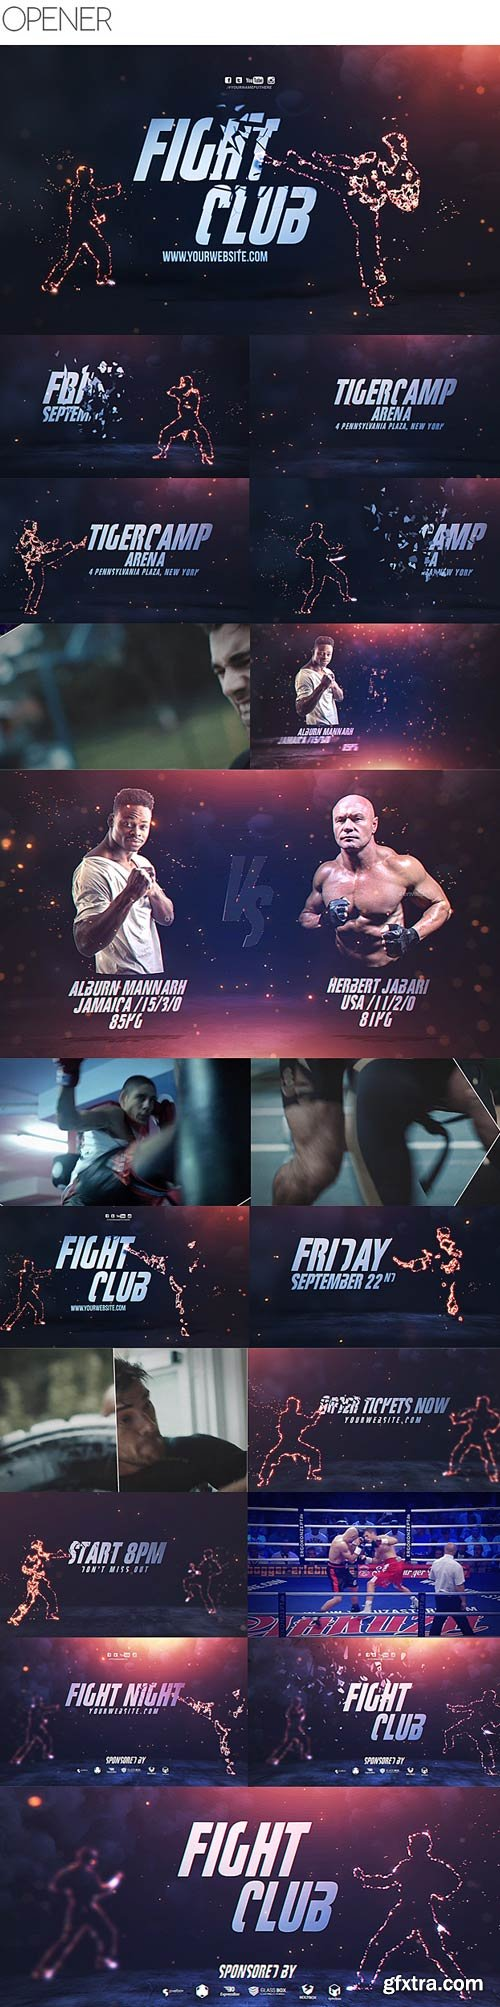 Videohive - Fight Club Broadcast Pack - 20617589